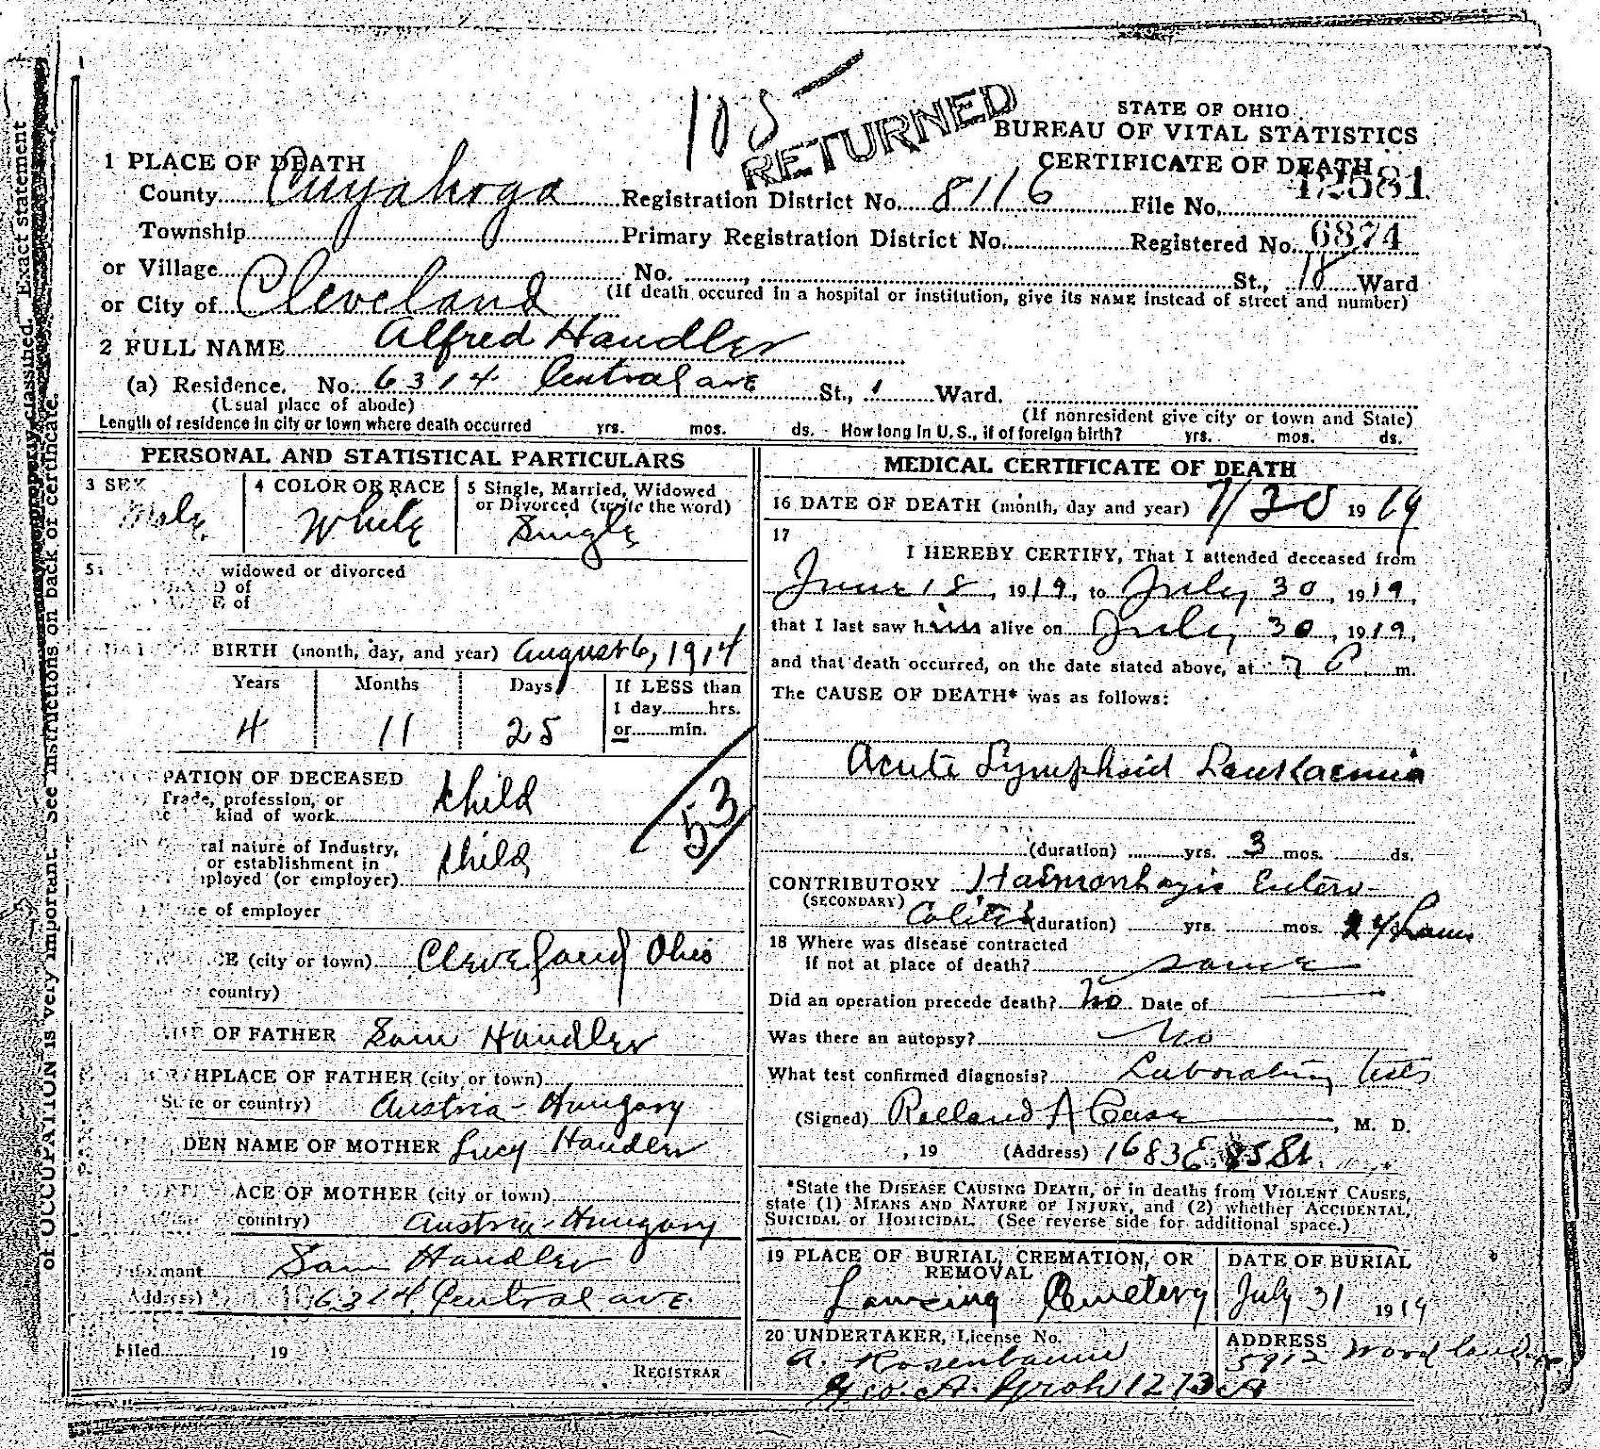 A jewish genealogy journey sympathy saturday a death followed according to sams brother josef handlers naturalization papers josef and lena handlers son alfred was born on august 10 1919 less than two weeks after aiddatafo Images